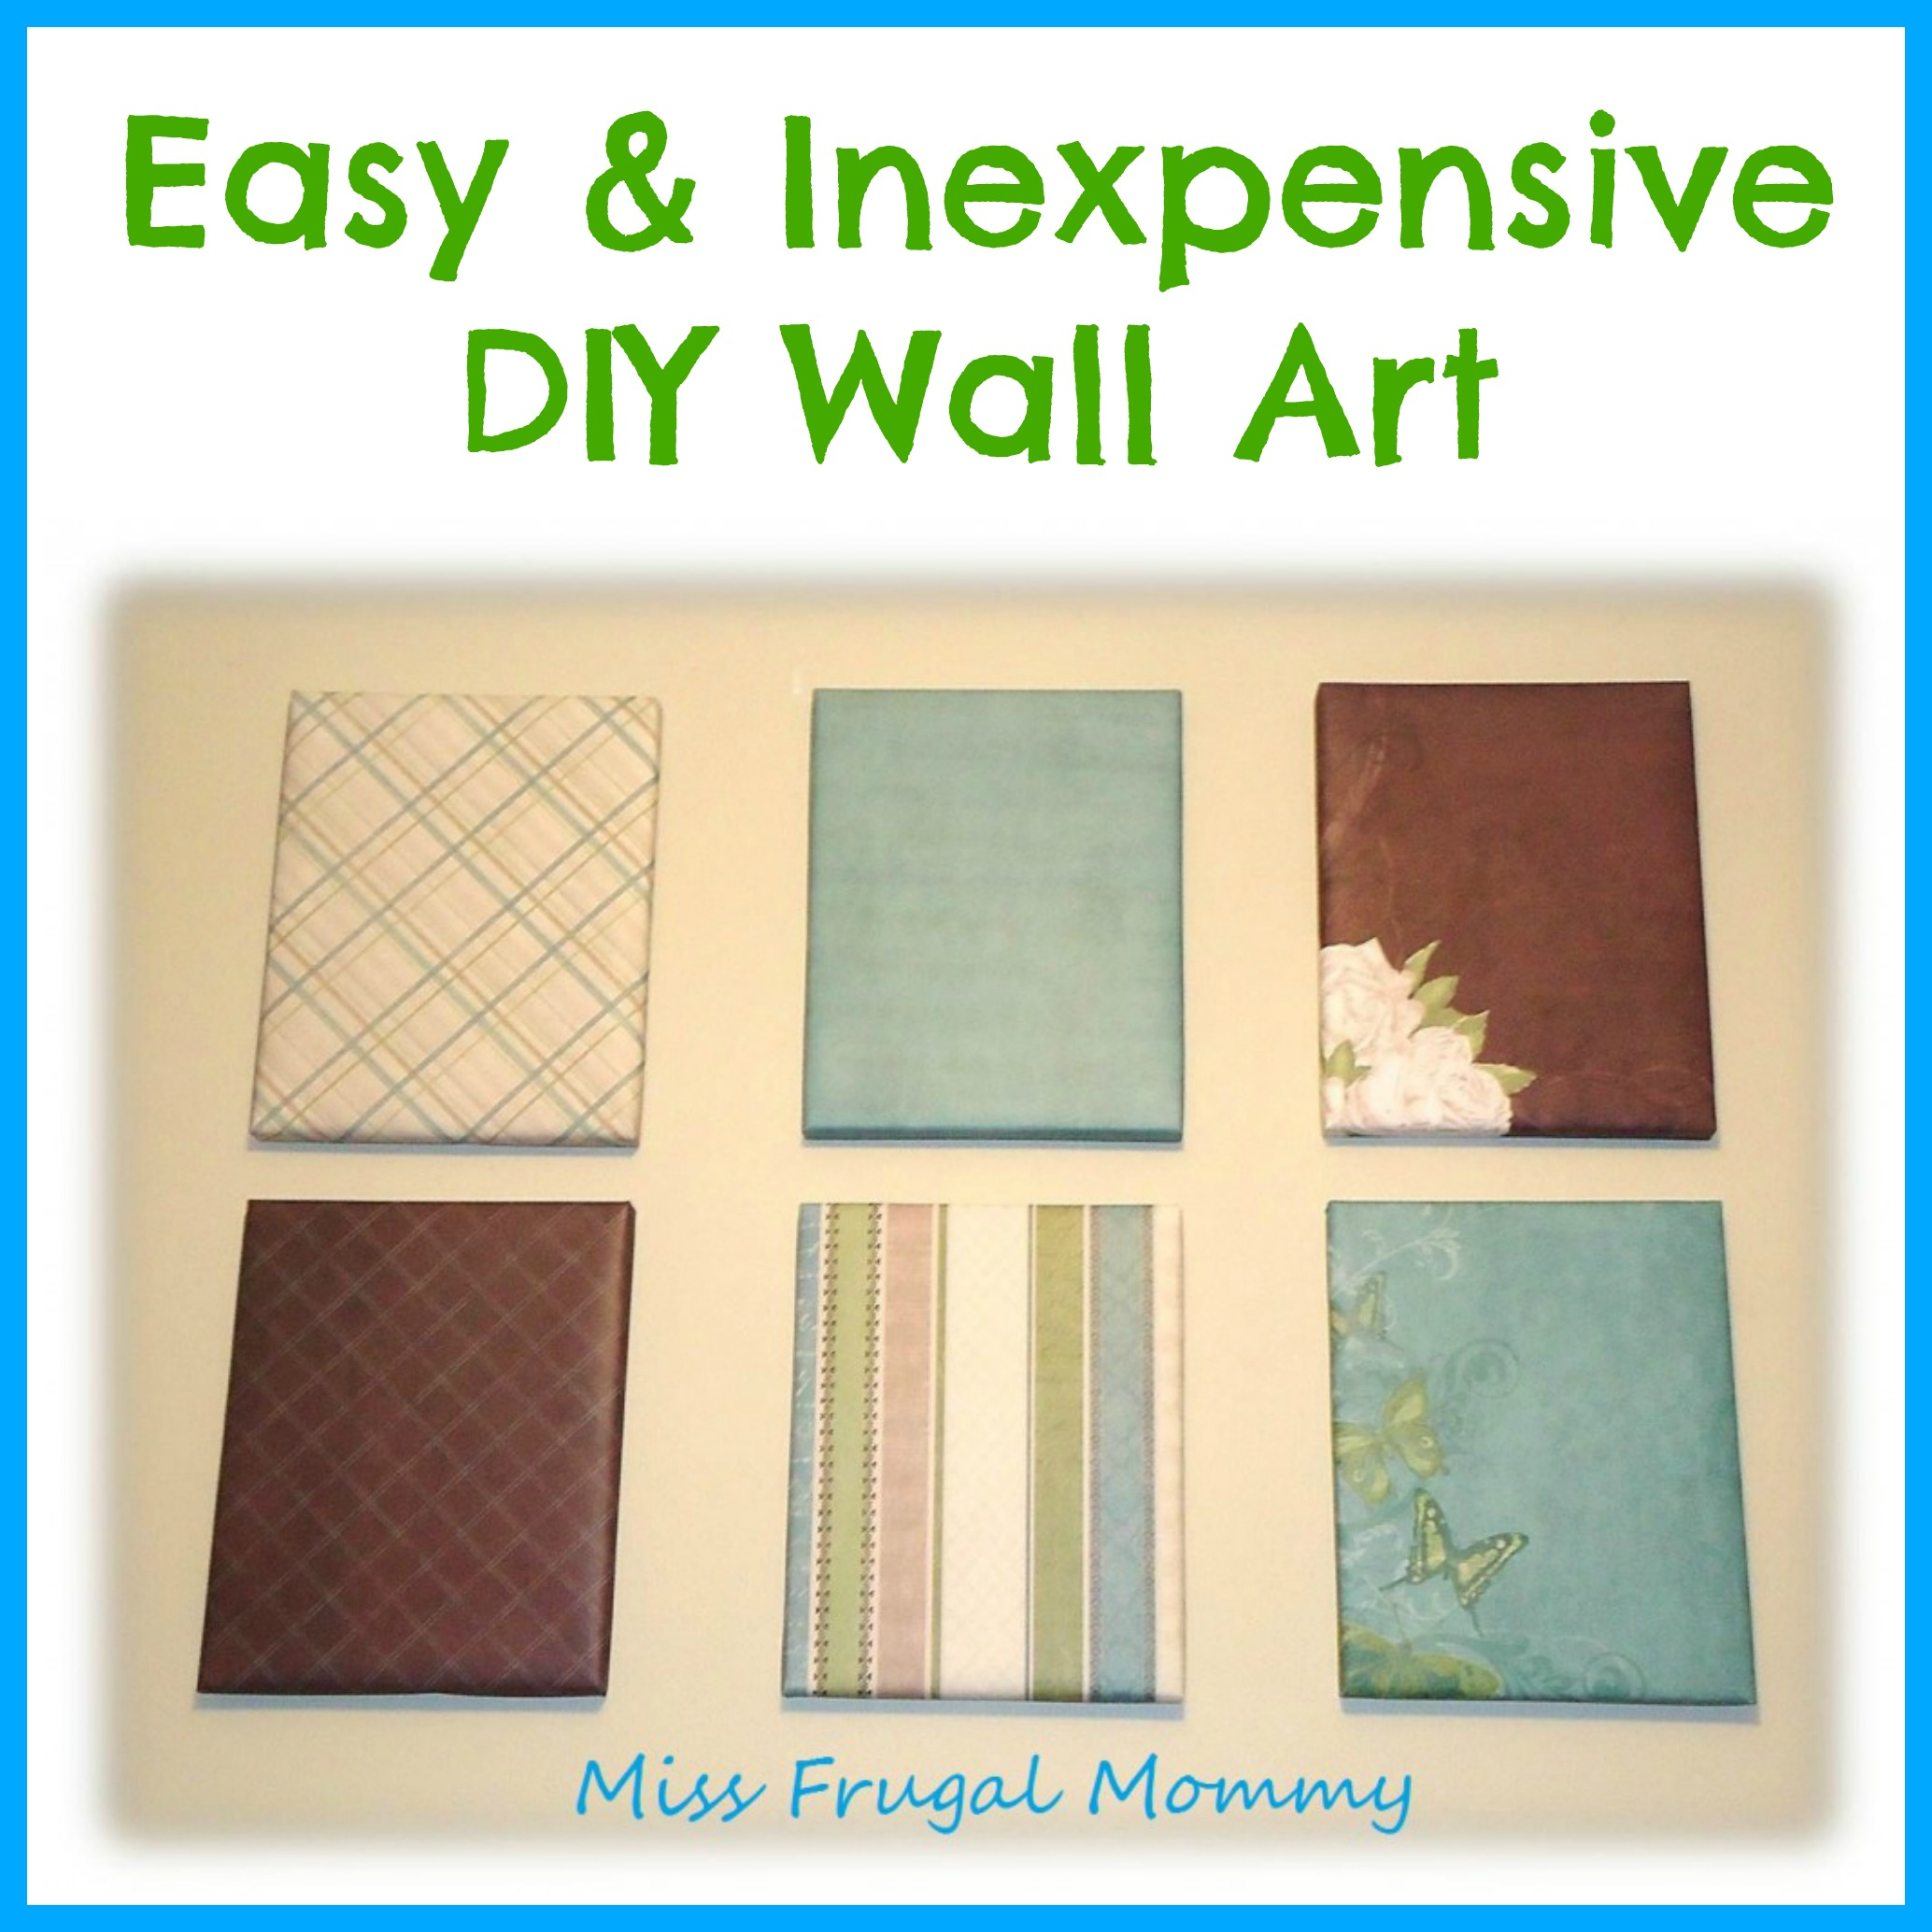 Easy & Inexpensive DIY Wall Art – Miss Frugal Mommy